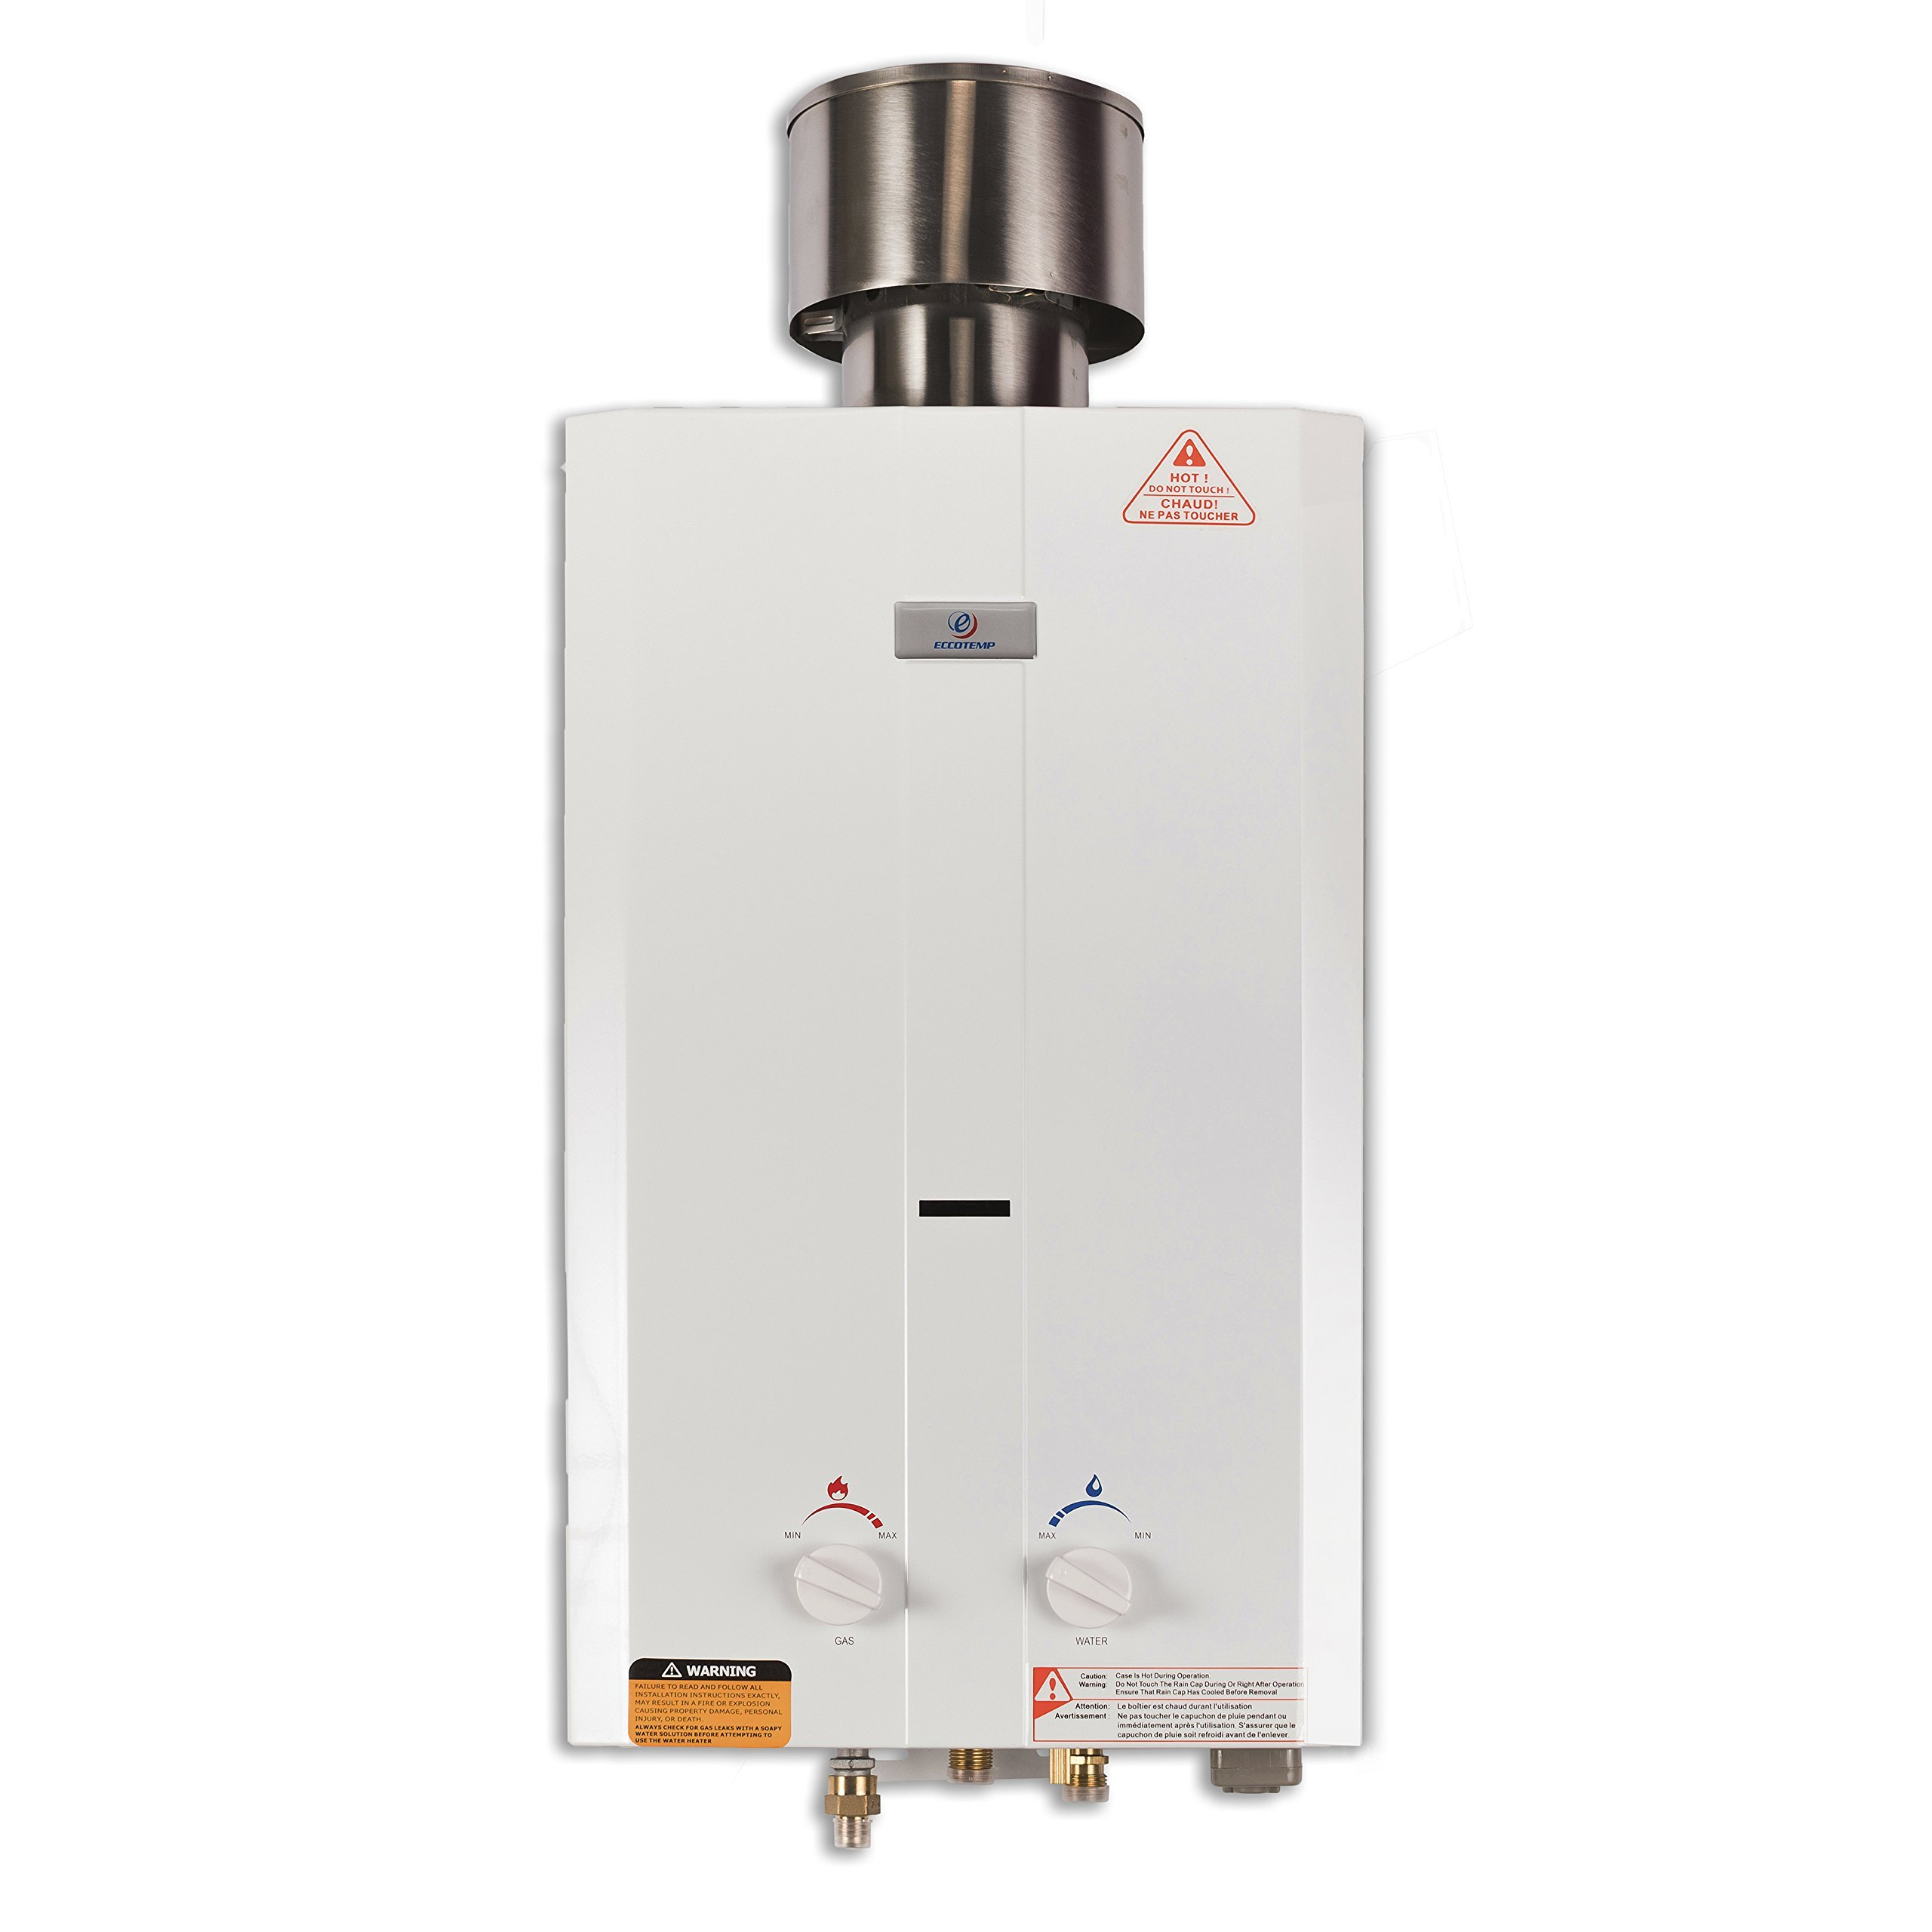 Eccotemp L10 2.6 GPM Portable Tankless Water Heater, 1 Pack, White by Eccotemp